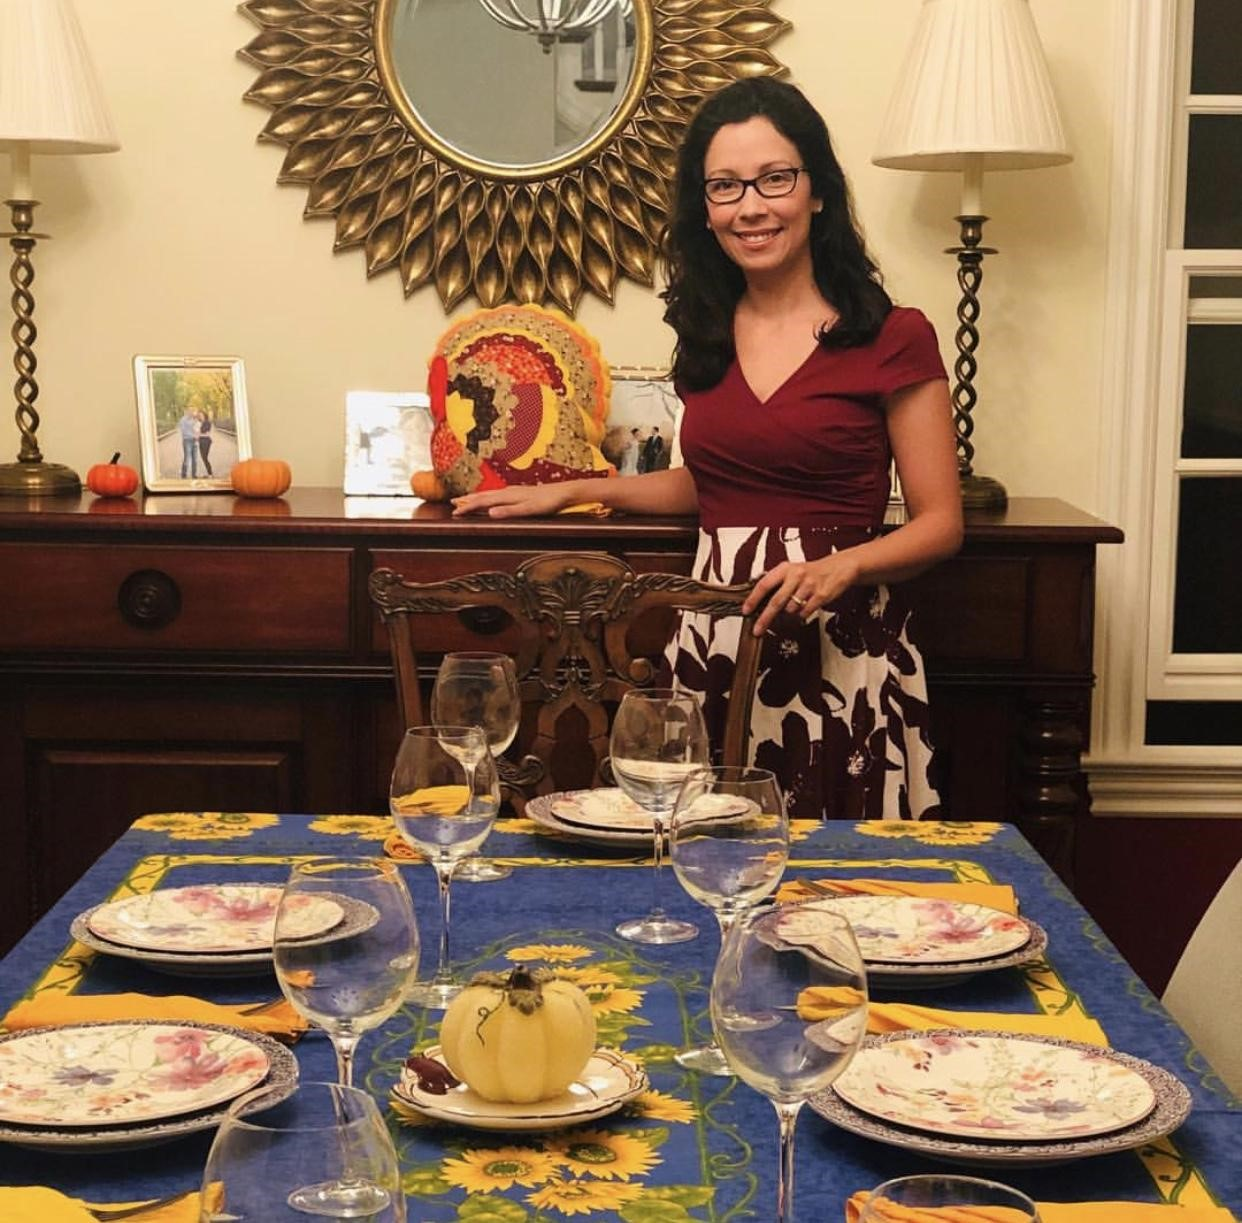 Tips and Tricks for Avoiding Conflict at the Thanksgiving Table